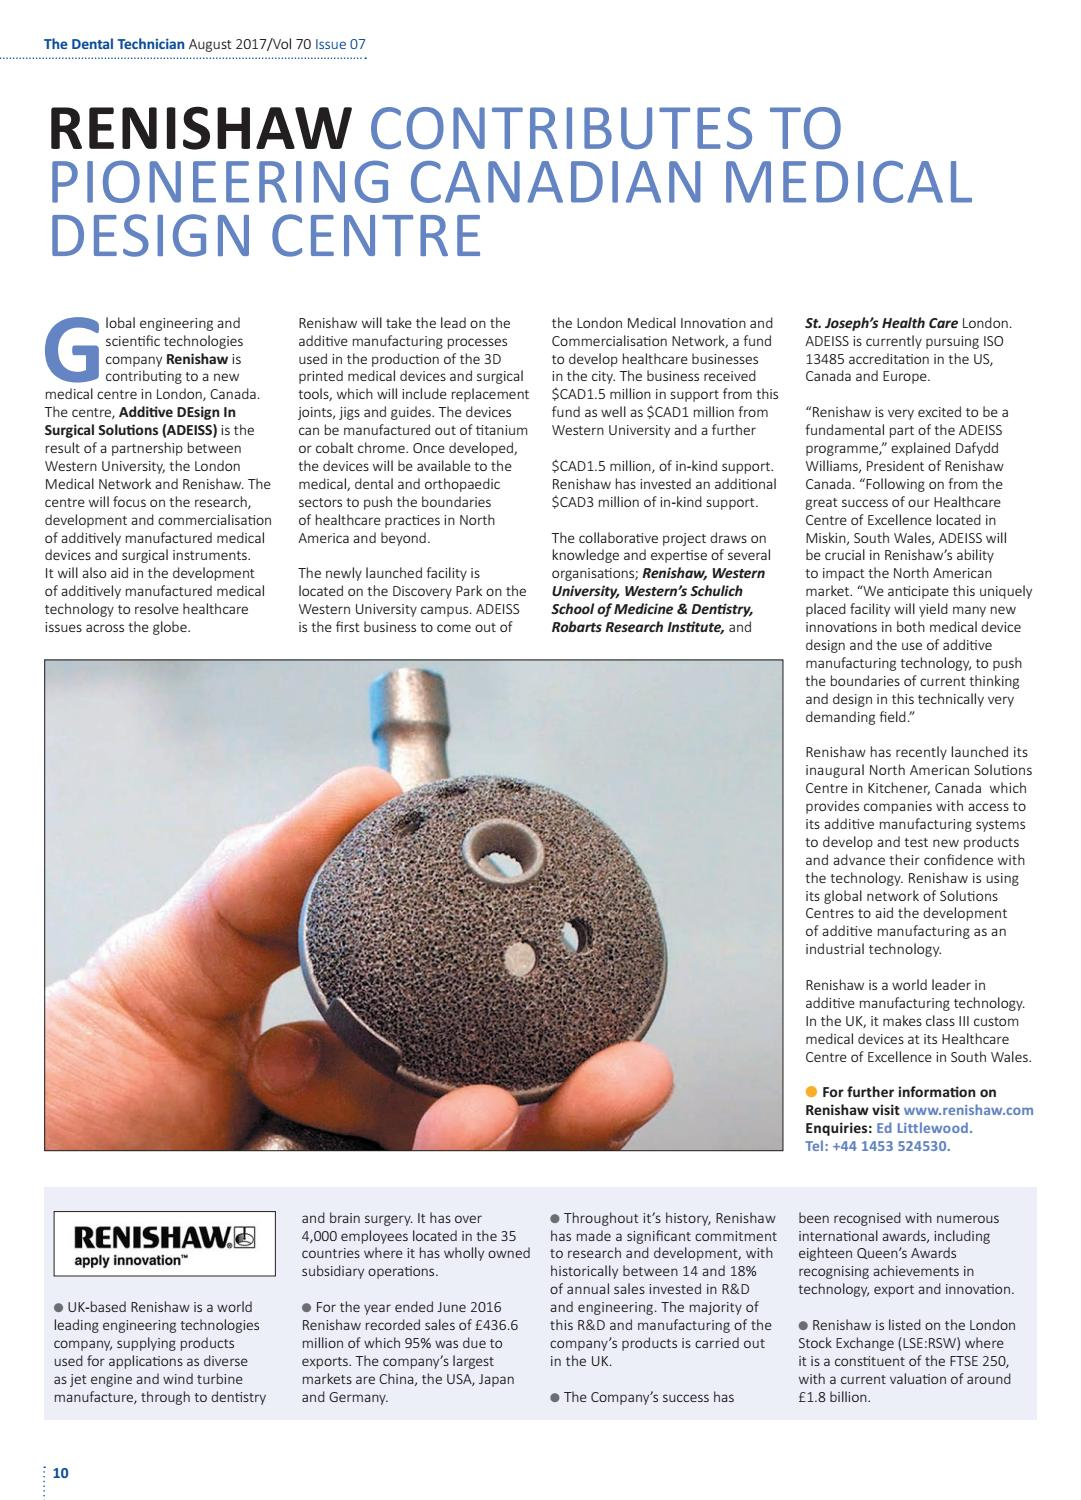 The Dental Technician Magazine August 2017 Issue Online